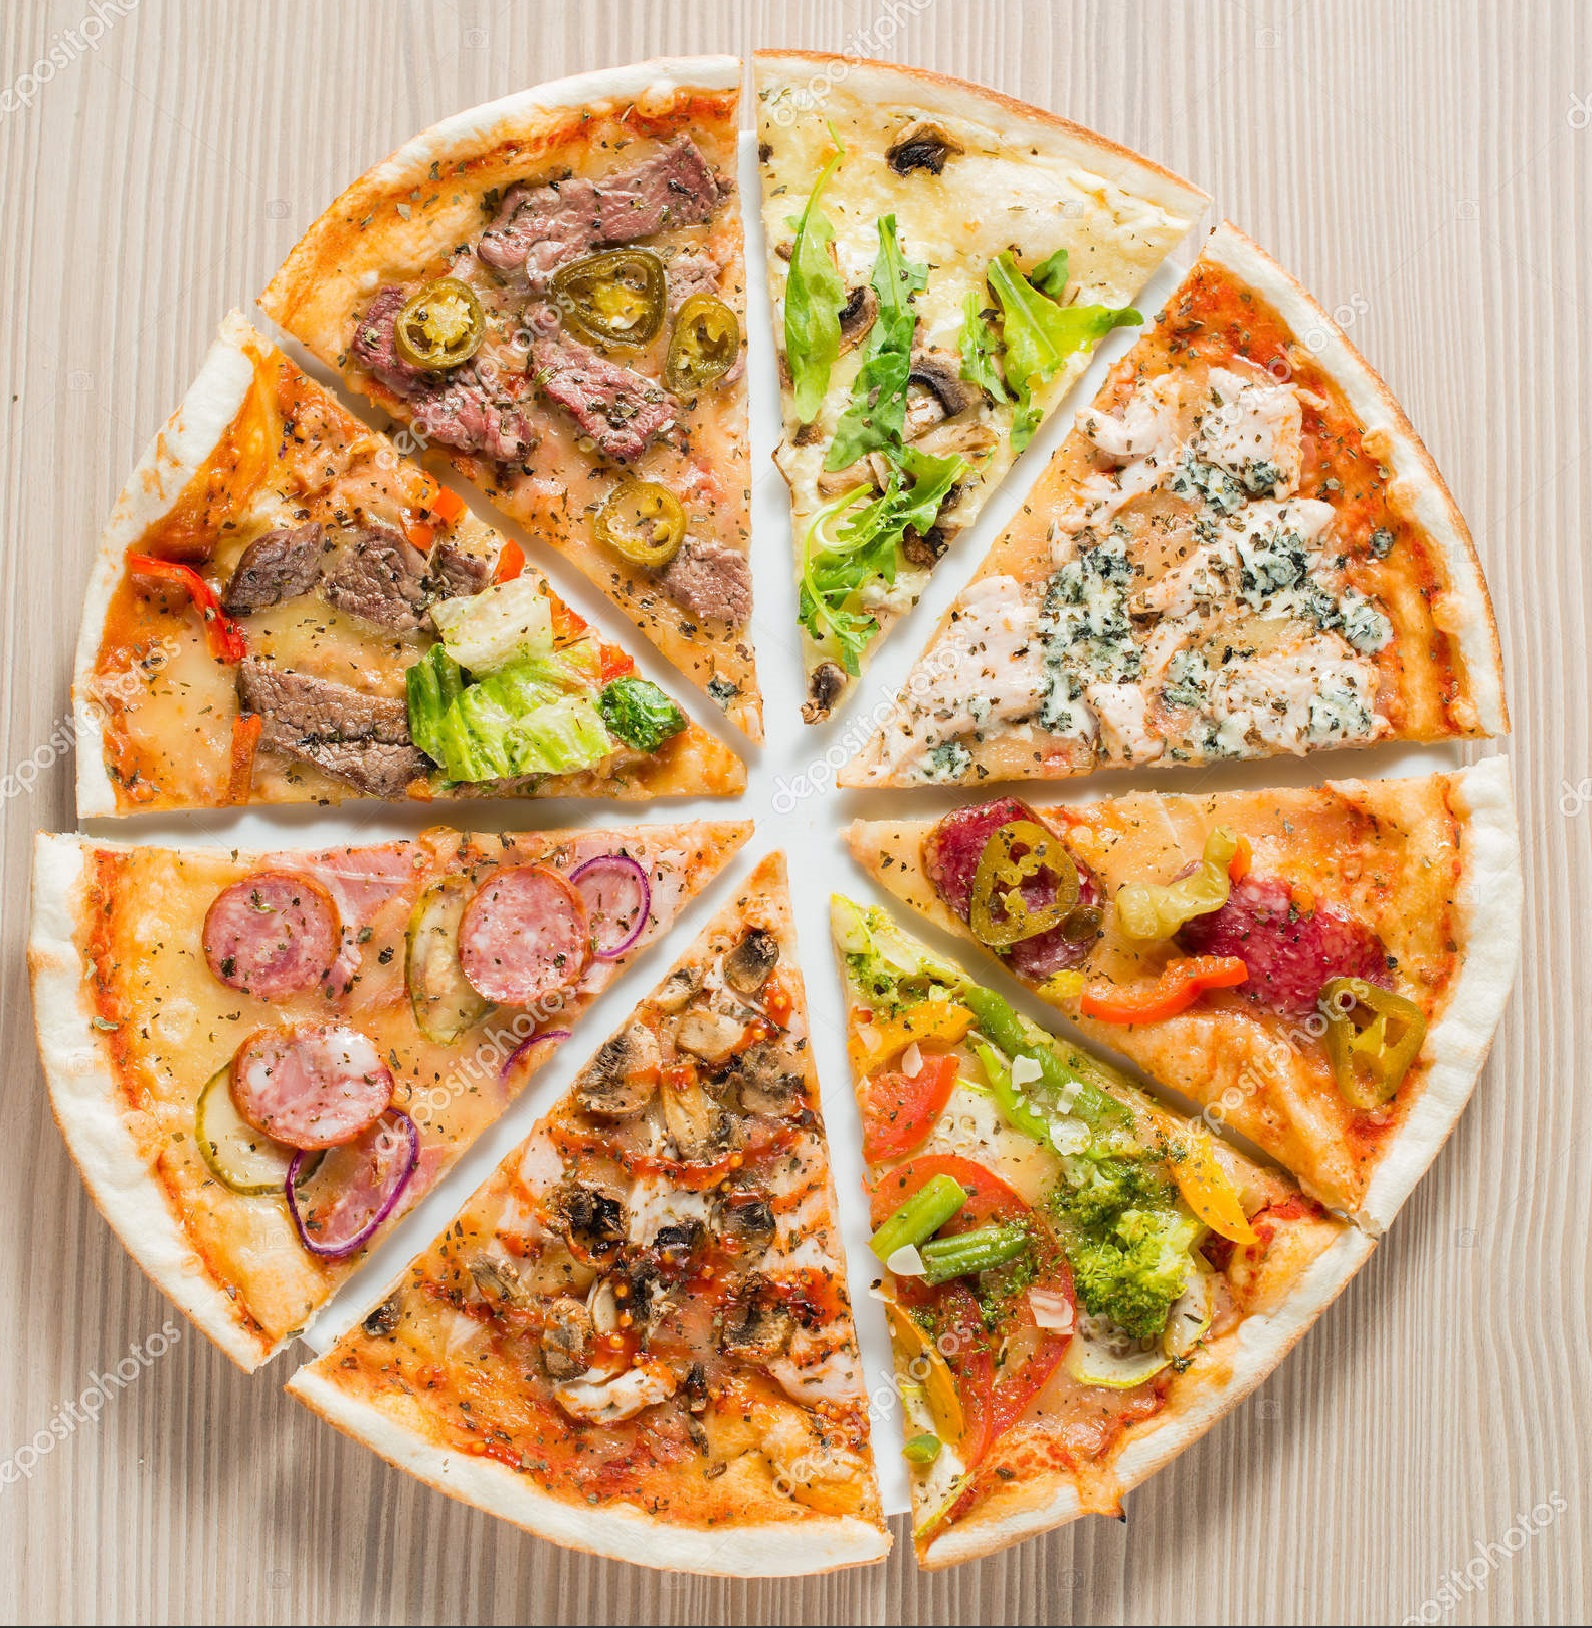 Share Pizza